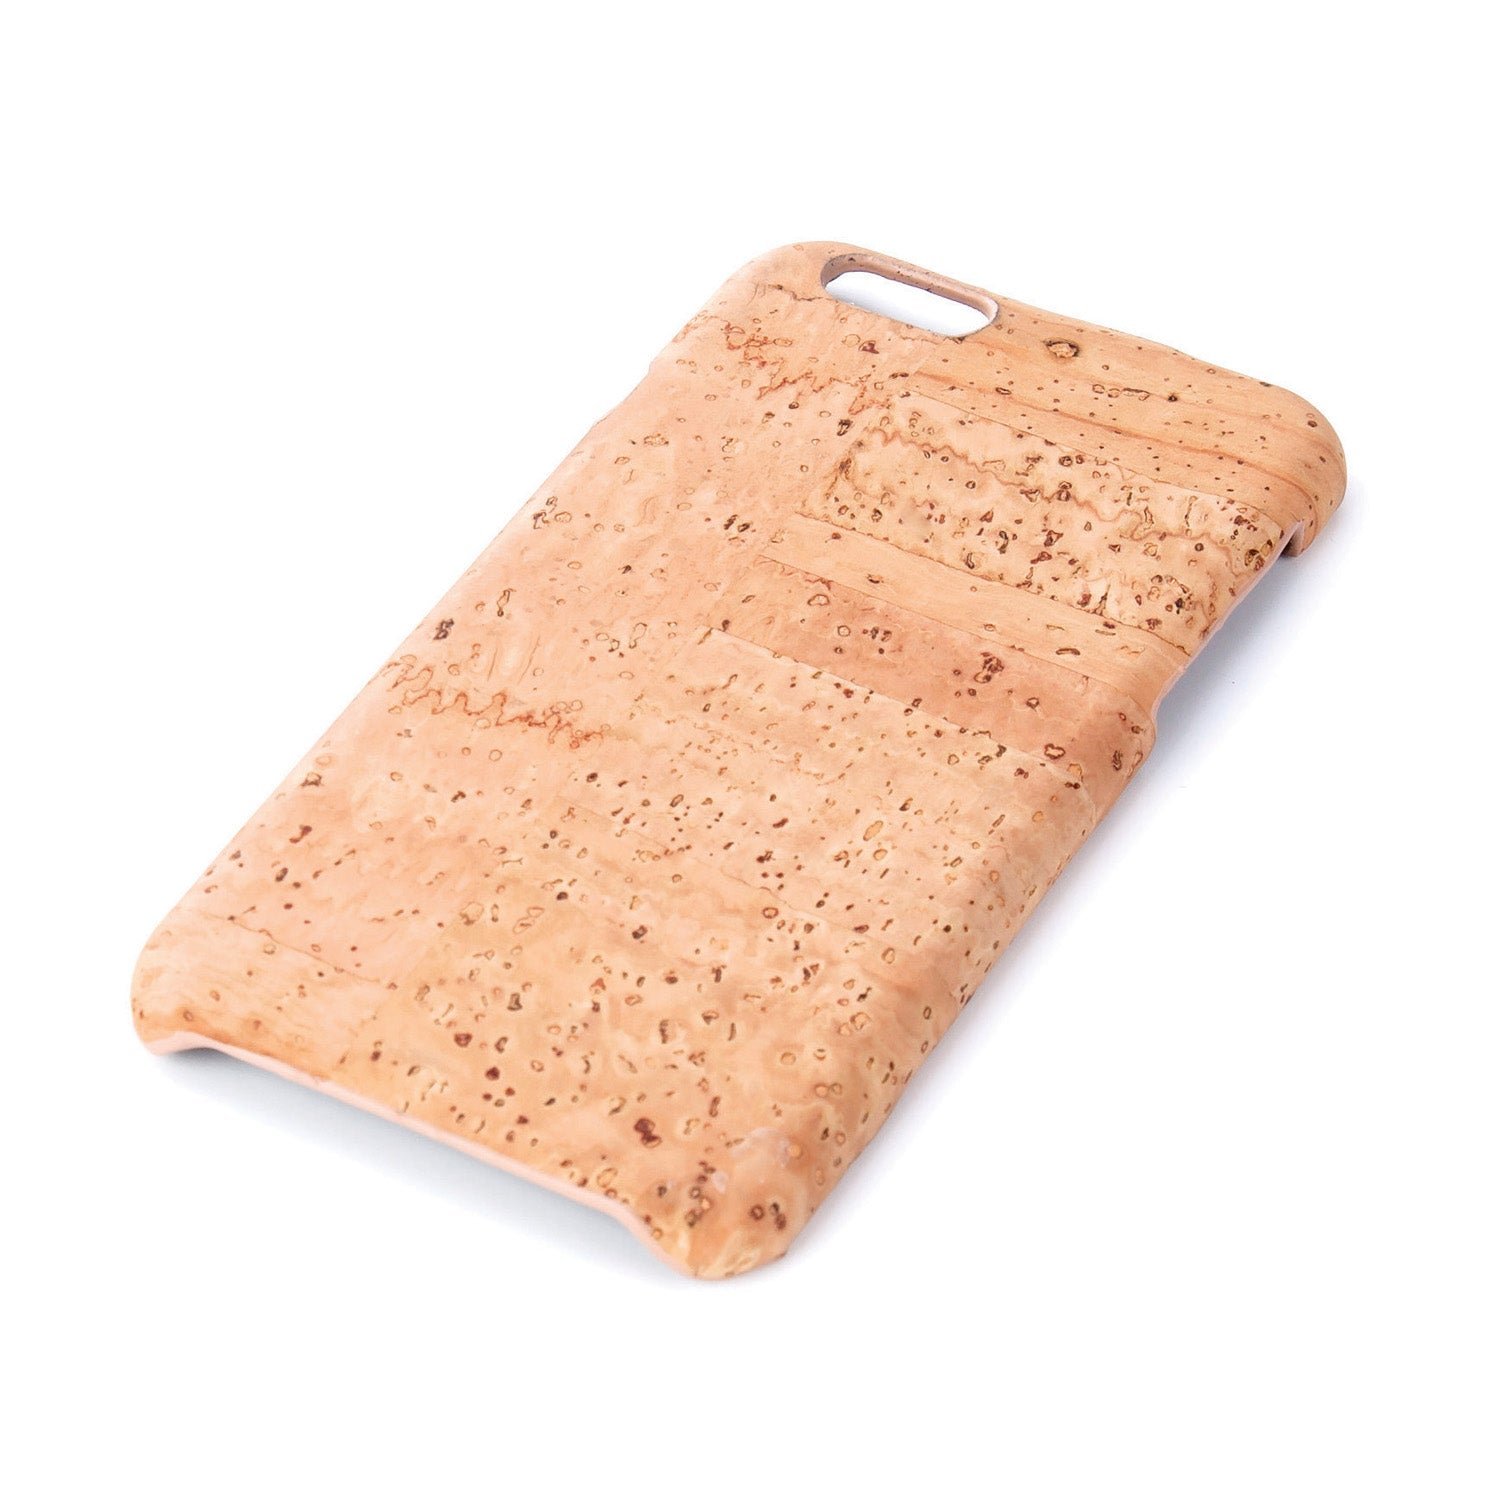 Cork iPhone 6 Case | HowCork - The Cork Marketplace